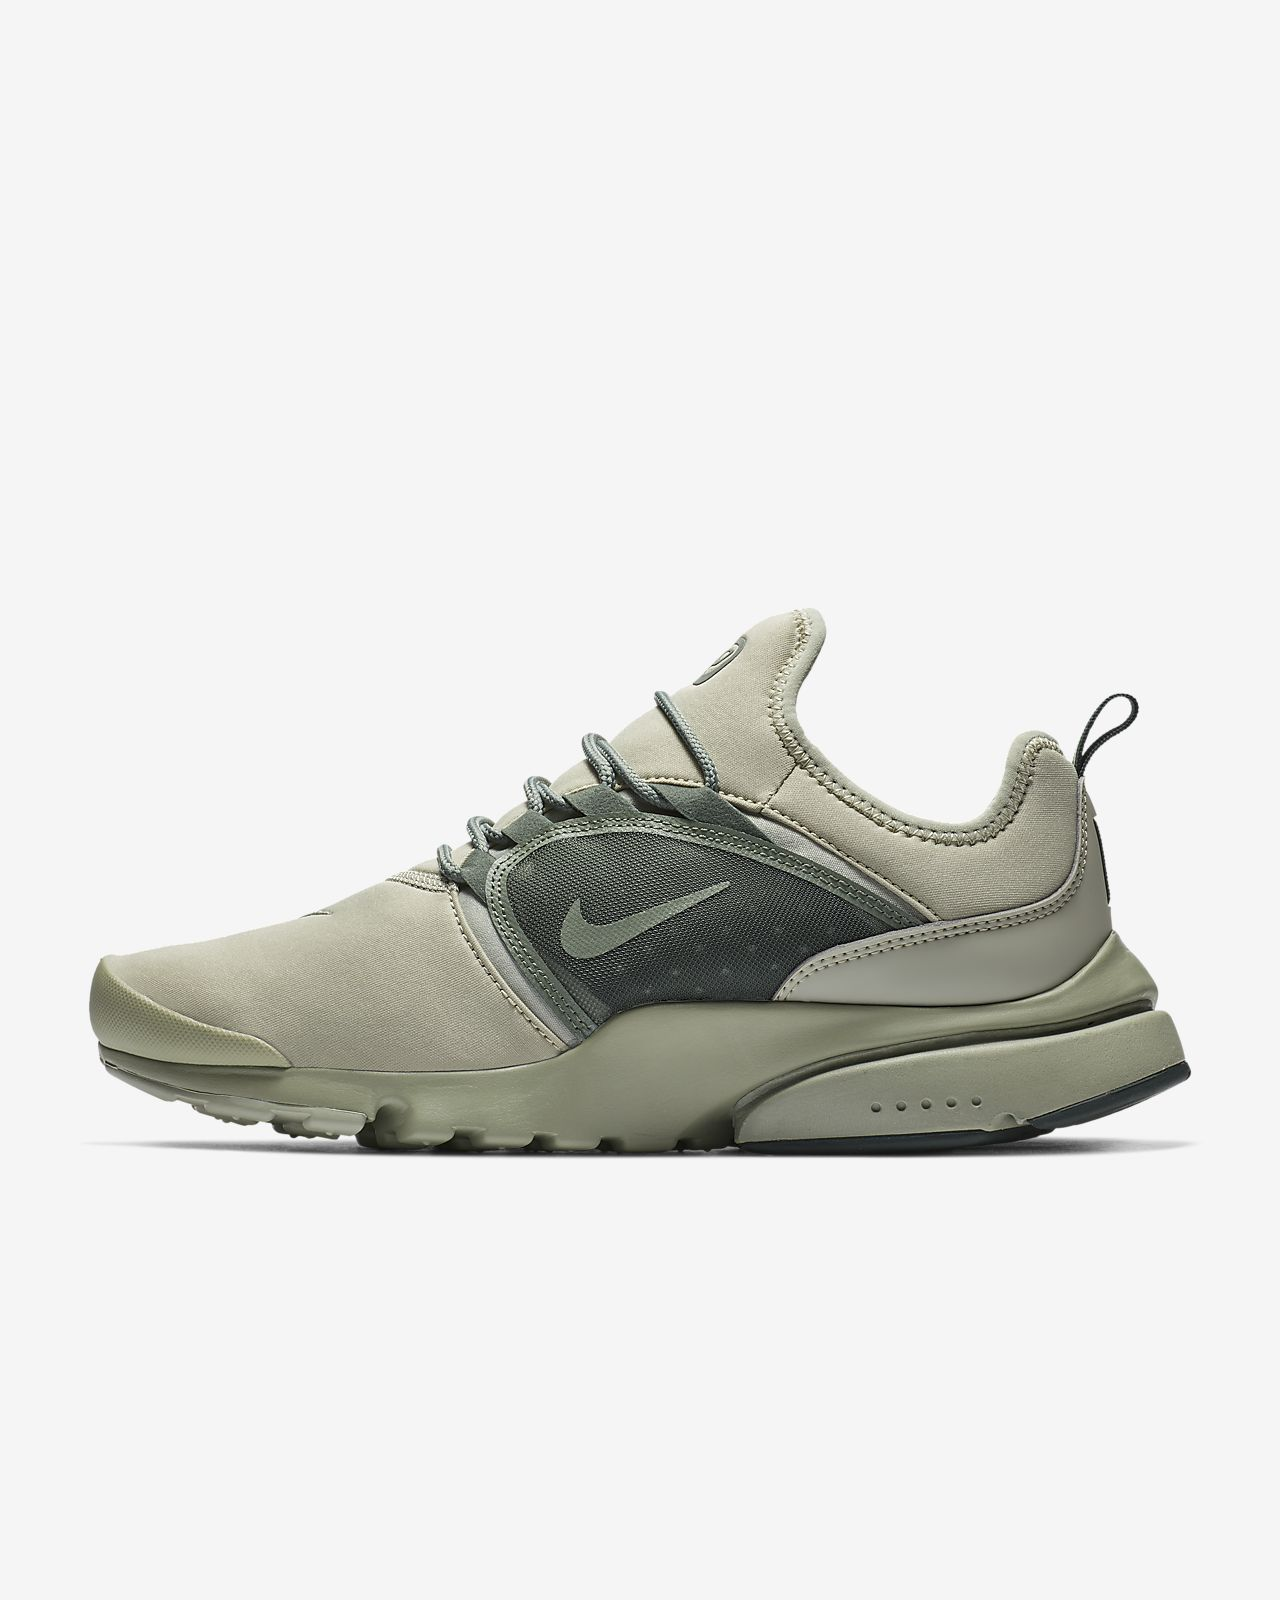 d242d89d6c6e Nike Presto Fly World Men s Shoe. Nike.com DK